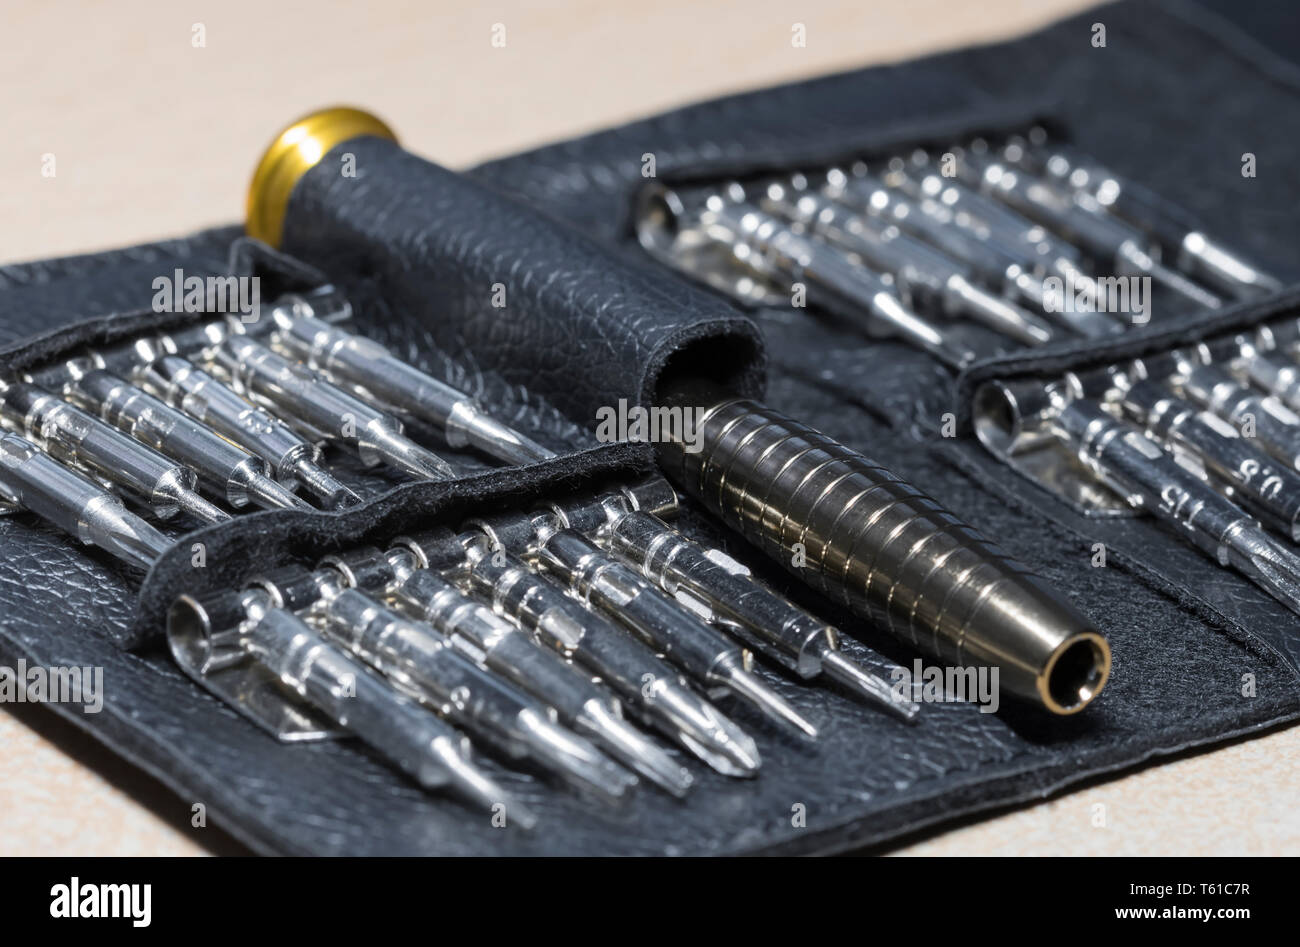 Precision screwdriver set including several torx bits in a wallet. - Stock Image